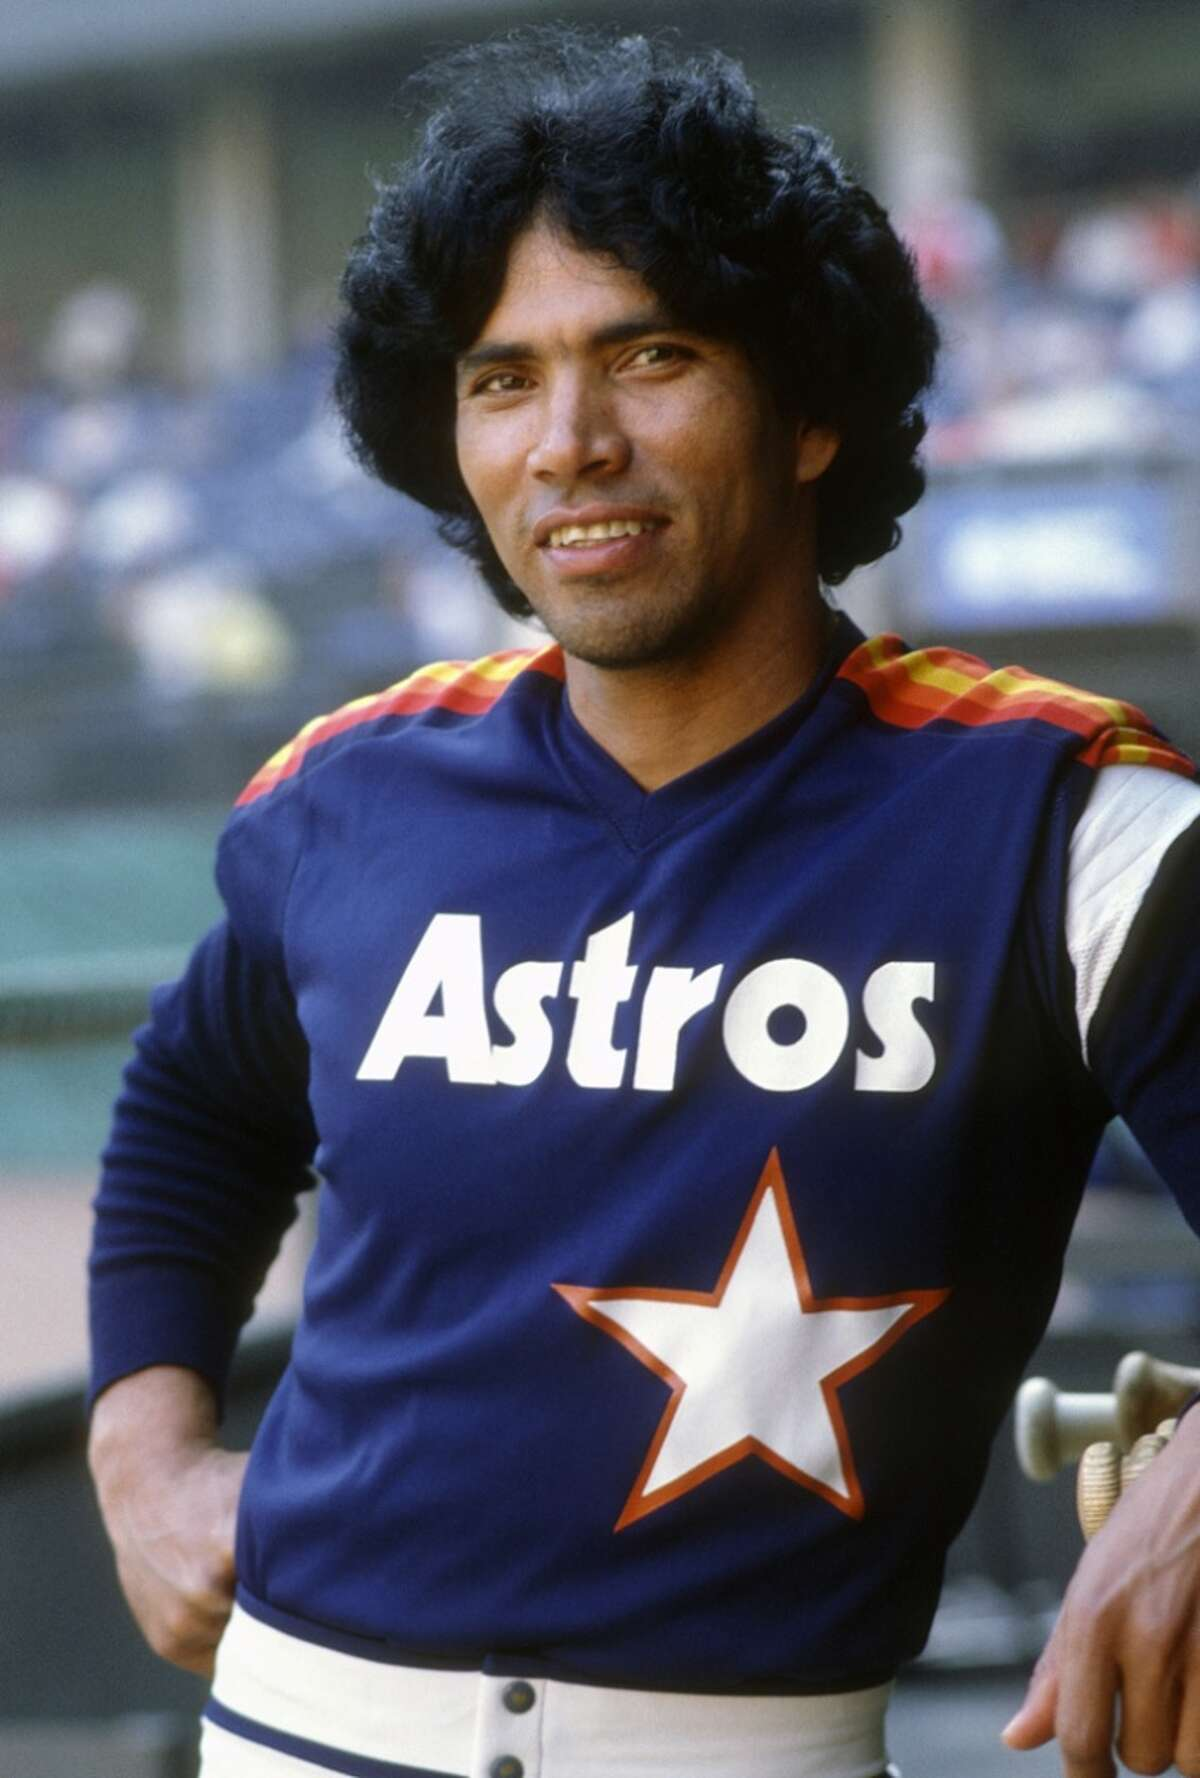 Outfielder Jose Cruz #25 of the Houston Astros smiles for the camera in this portrait during an Major League Baseball game circa 1975. Cruz played for the Astros from 1975-87. (Photo by Focus on Sport/Getty Images)